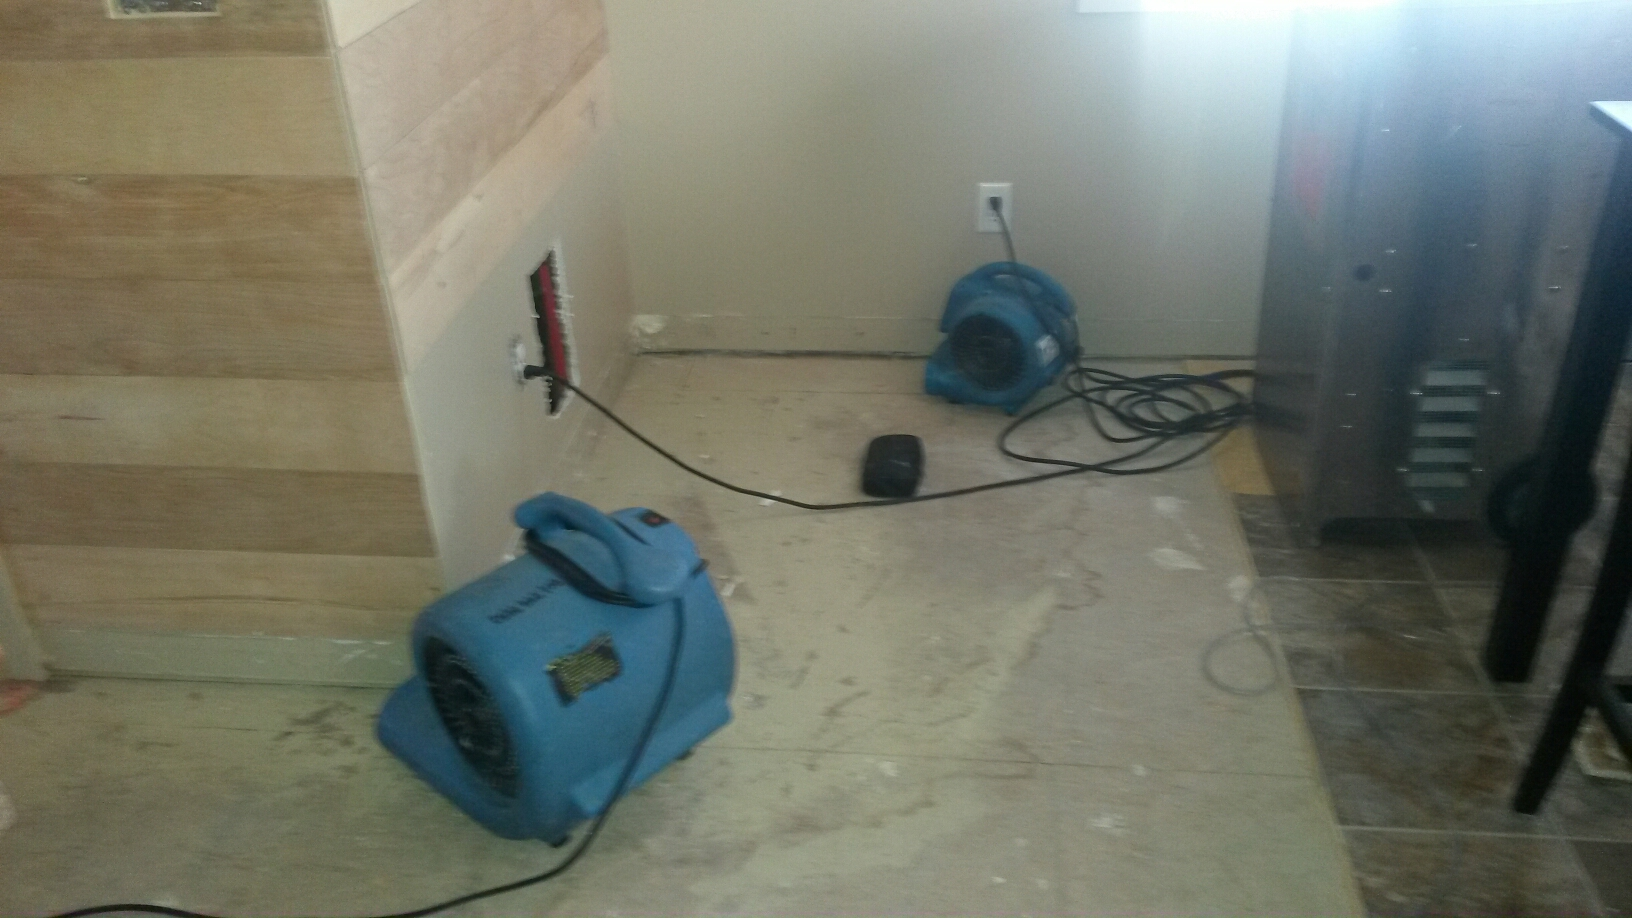 Farmington, UT - Monitoring the drying progress in this Farmington Utah home. The walls are dry, osb subfloor is slower to dry it will still take another day or two.